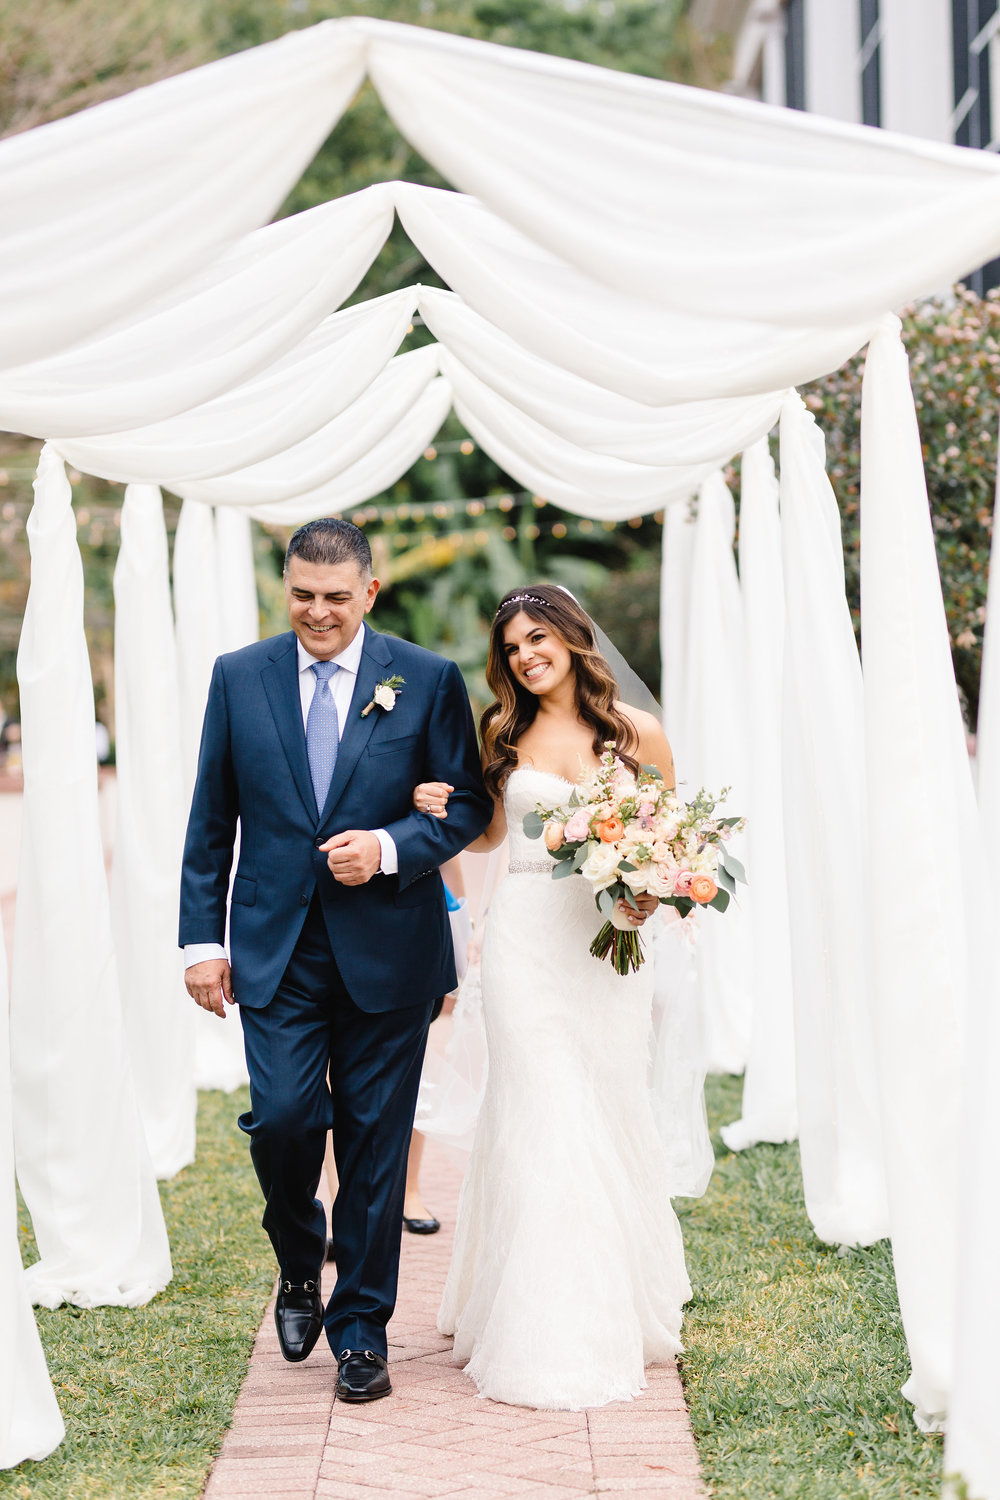 Blushing bride escorted by father, Orlando wedding ceremony